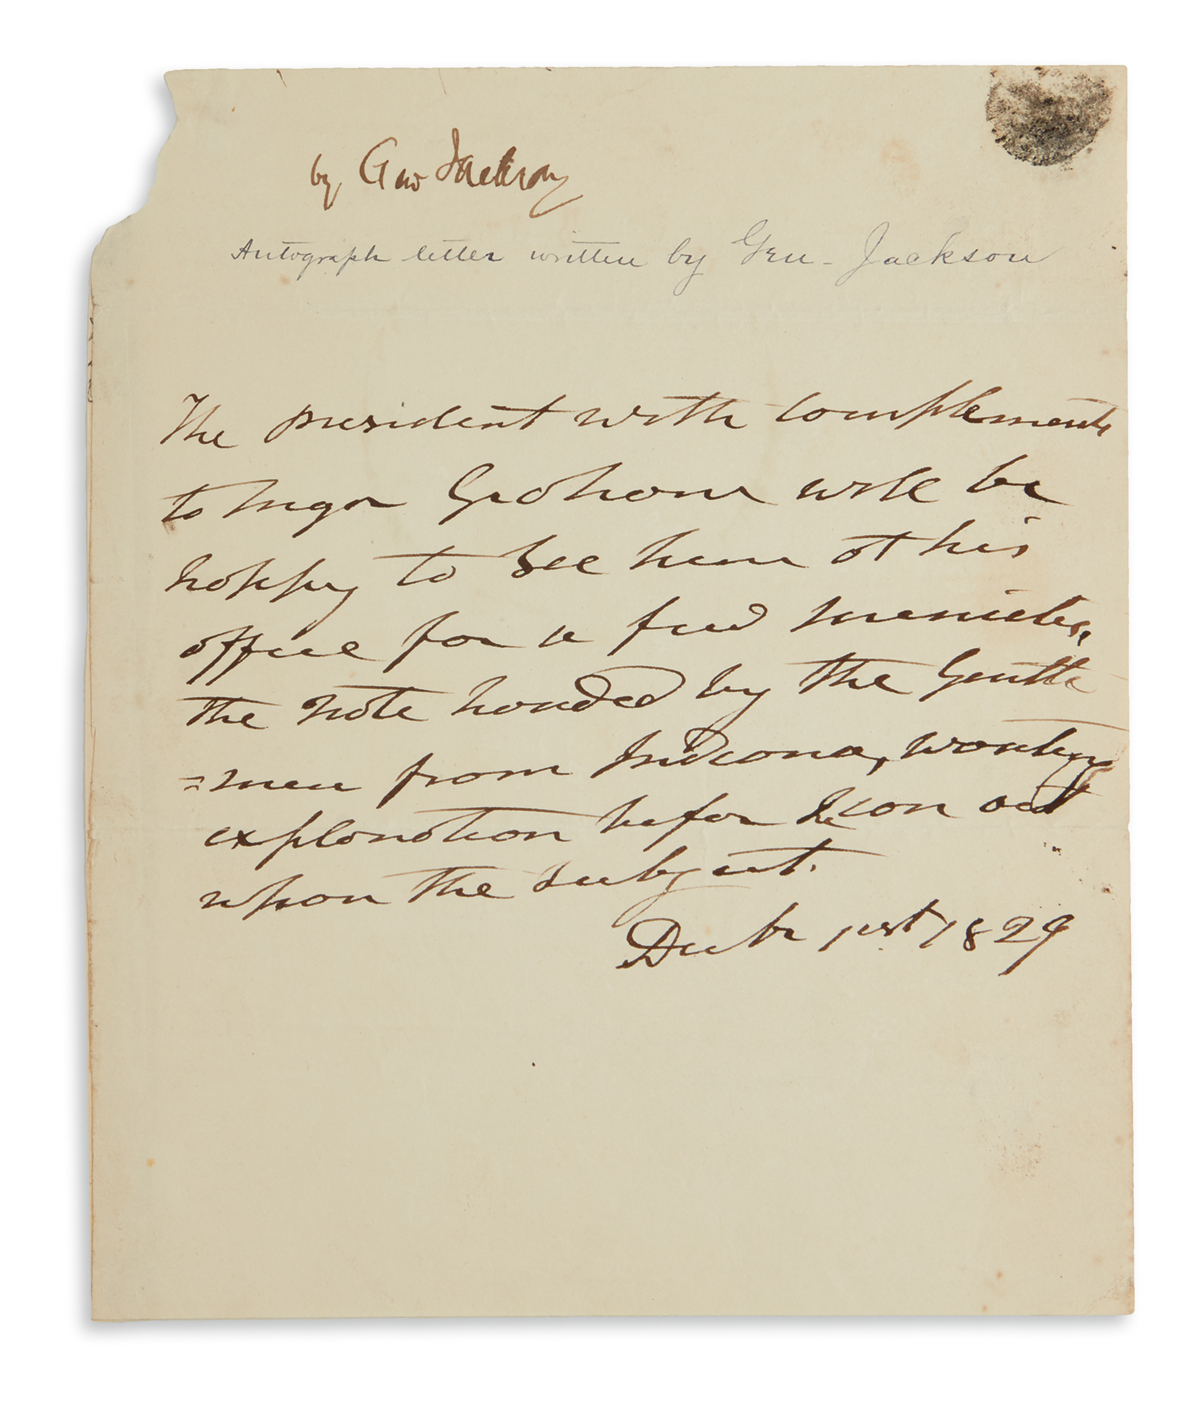 ANDREW-JACKSON-Autograph-Note-Signed-The-President-in-the-th